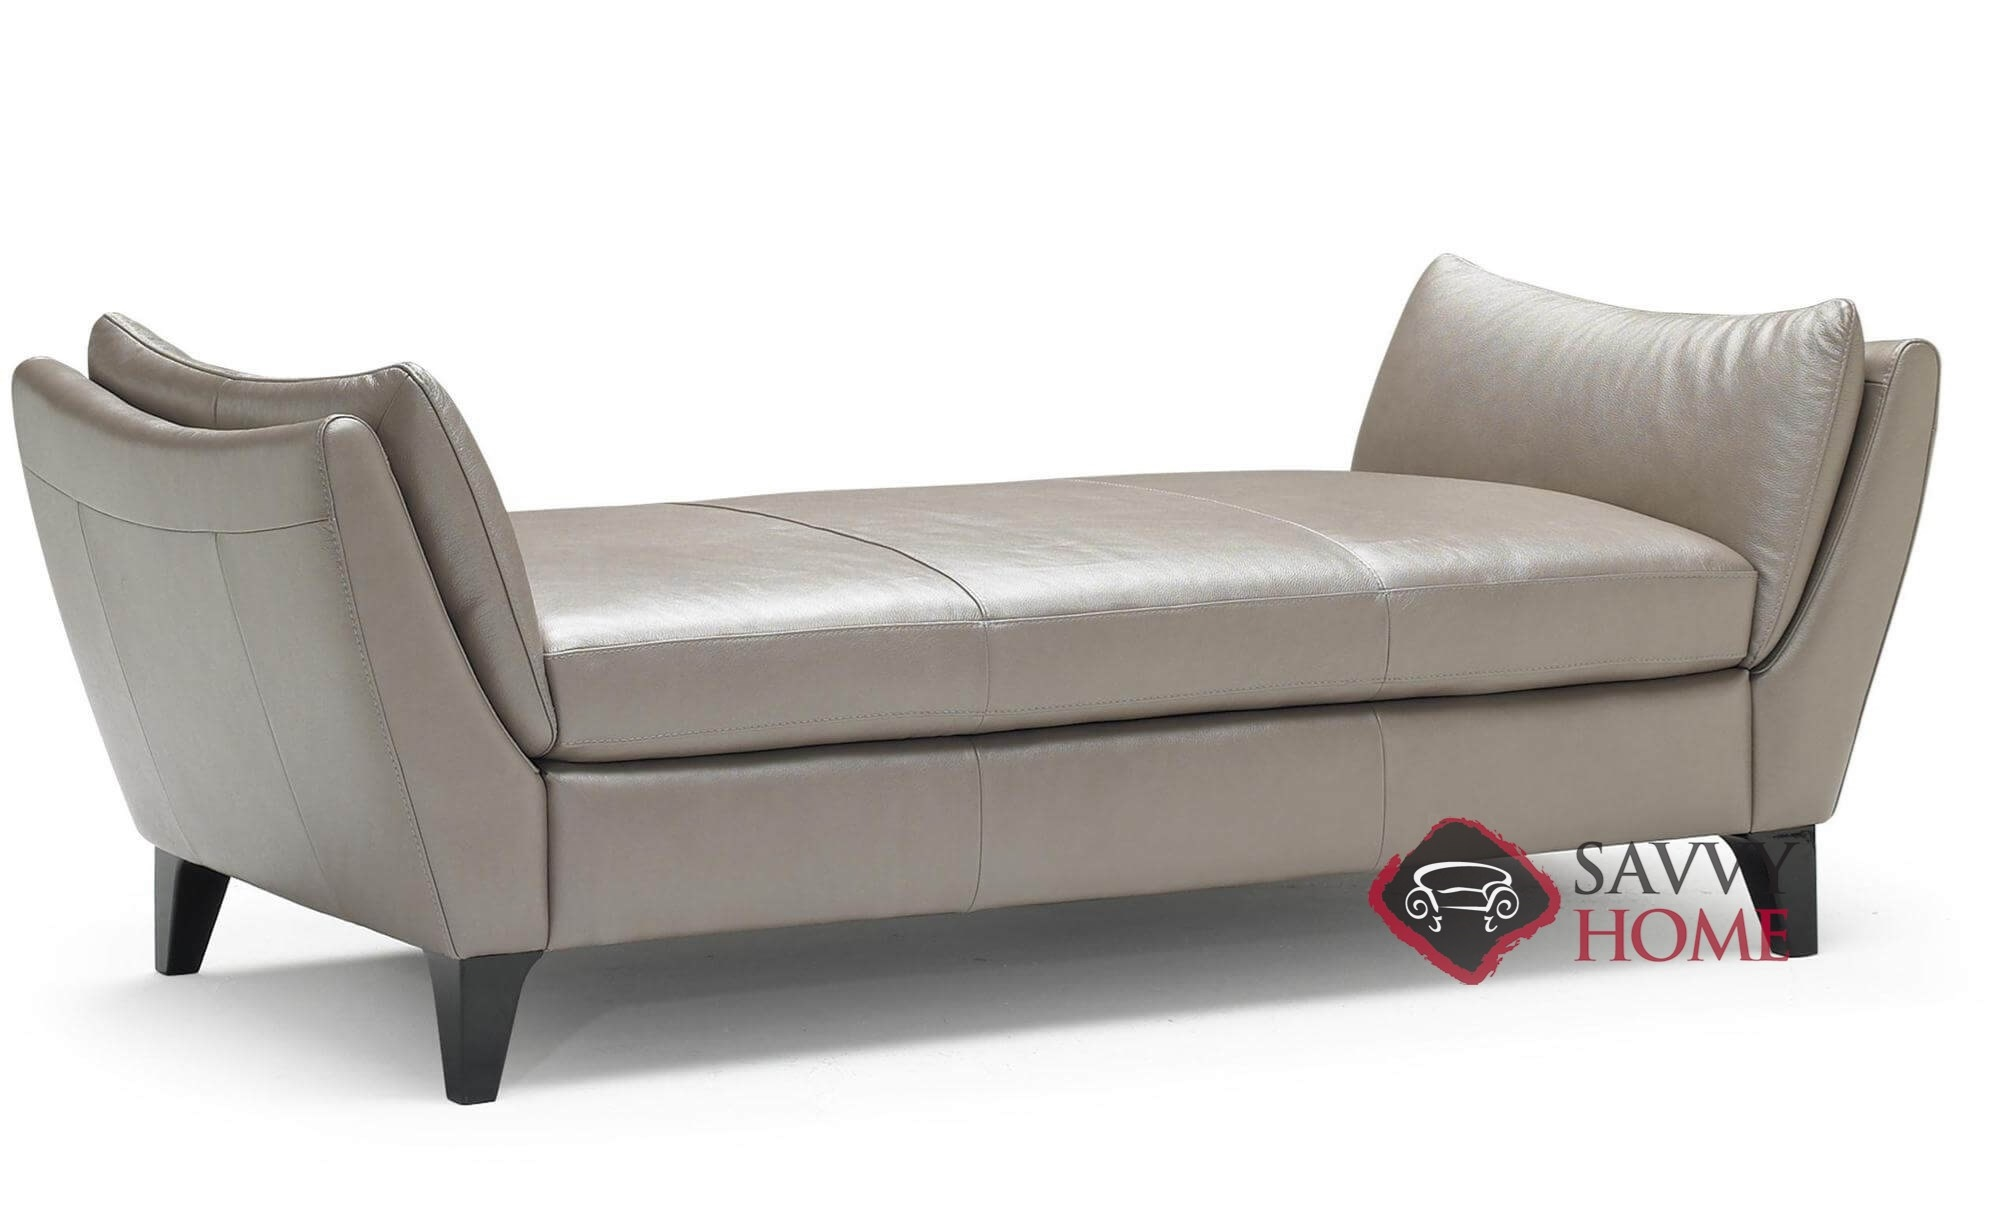 - Edoardo (A486) Leather Stationary Chaise Lounge By Natuzzi Is